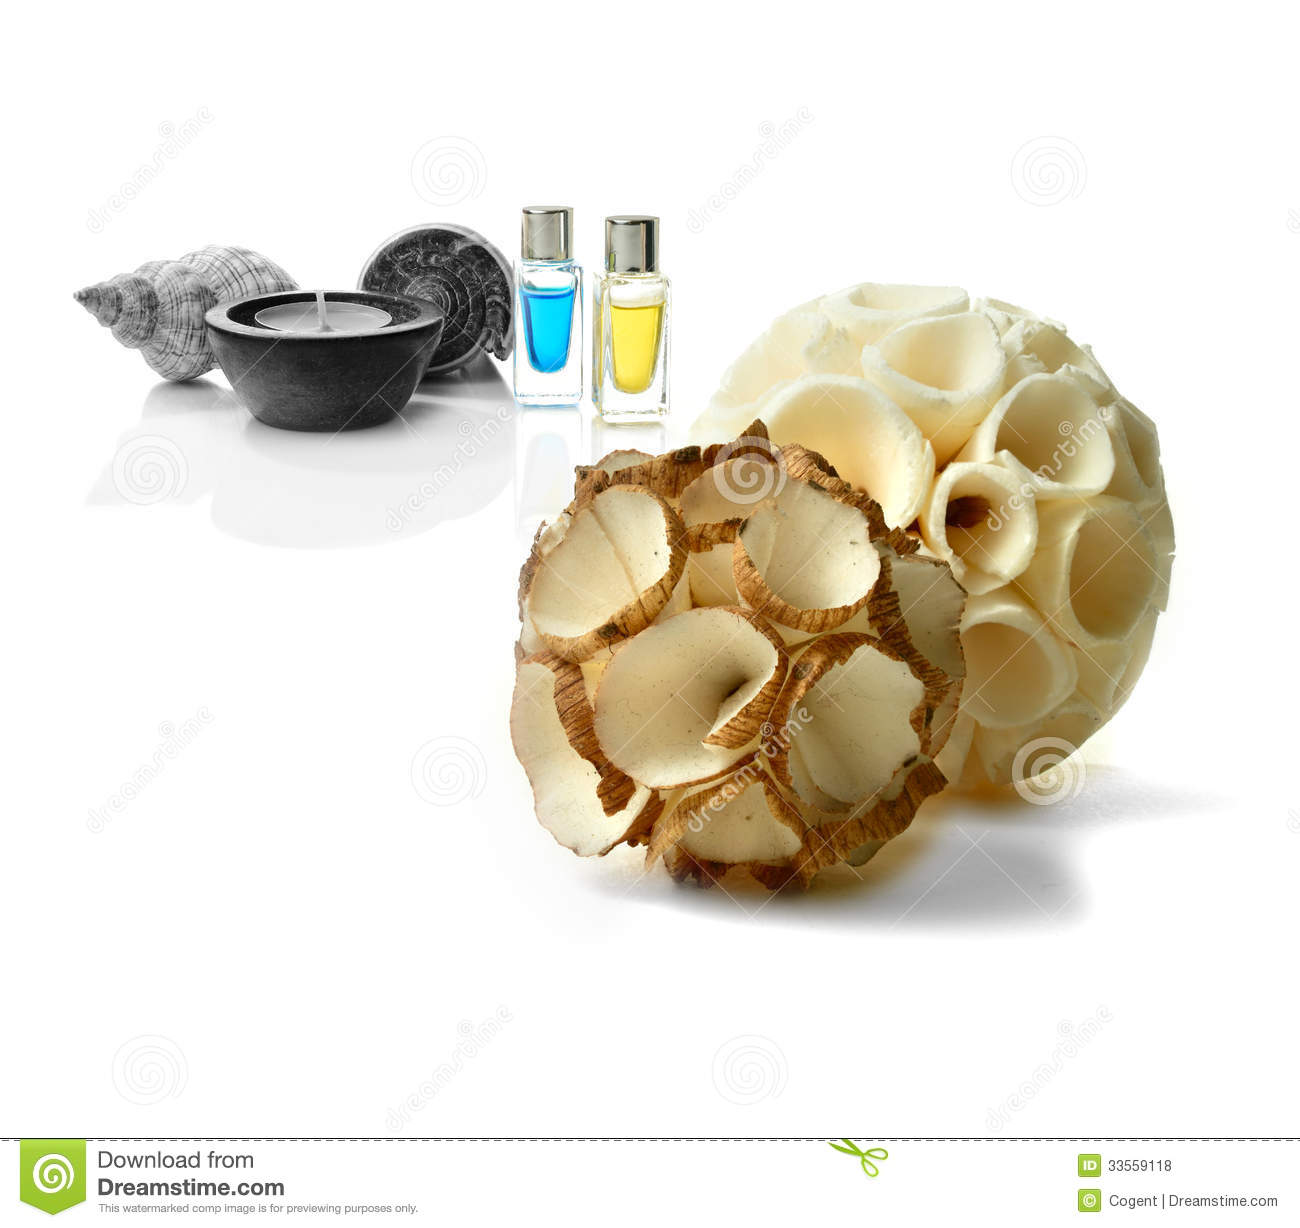 how to clean and whiten seashells